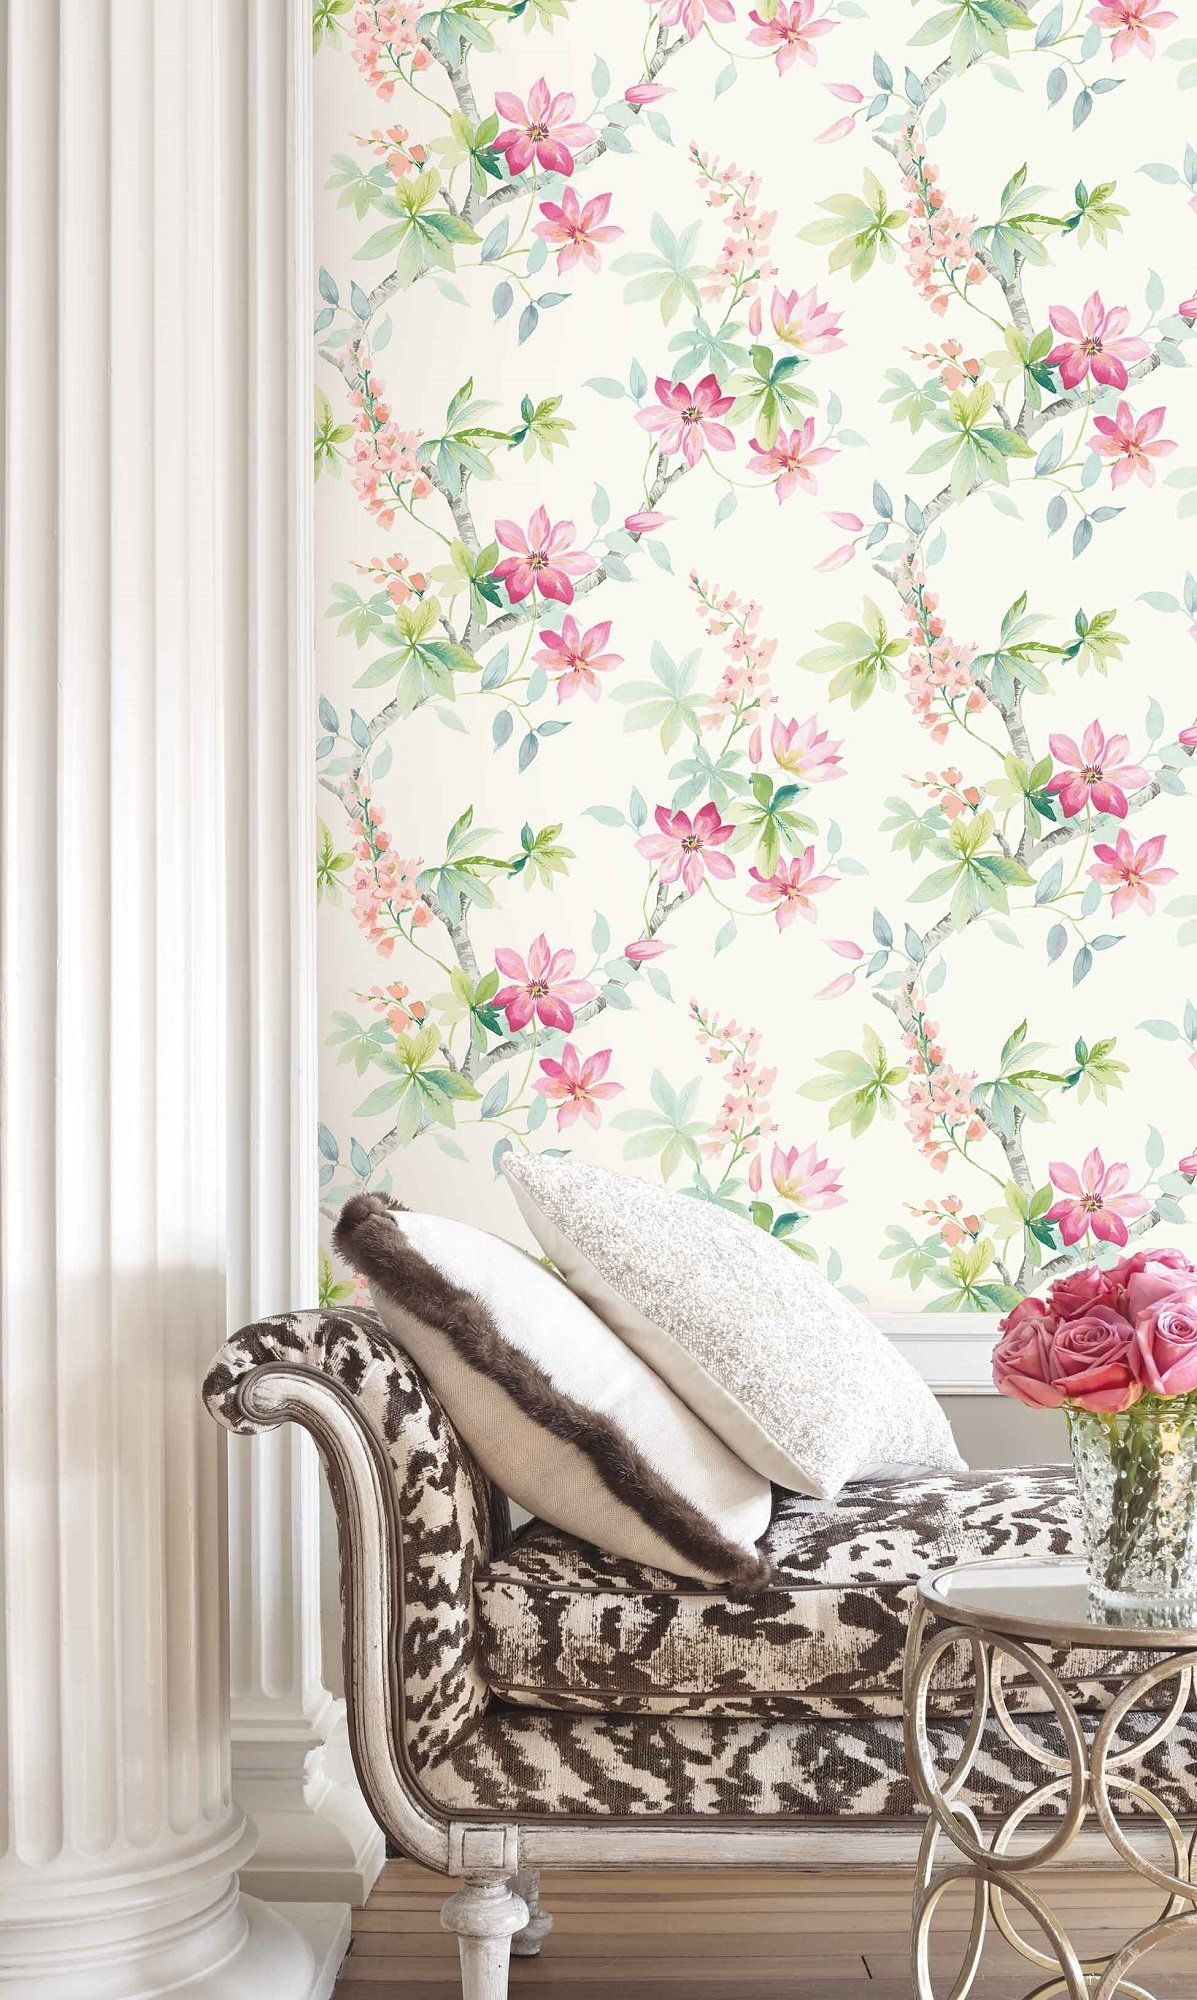 Over The Last 25 Years Carl Robinson Has Created Wallcoverings That Stand For Exceptional Design In Which Dreams Wallpaper Wallpaper Online Wallpaper Shopping